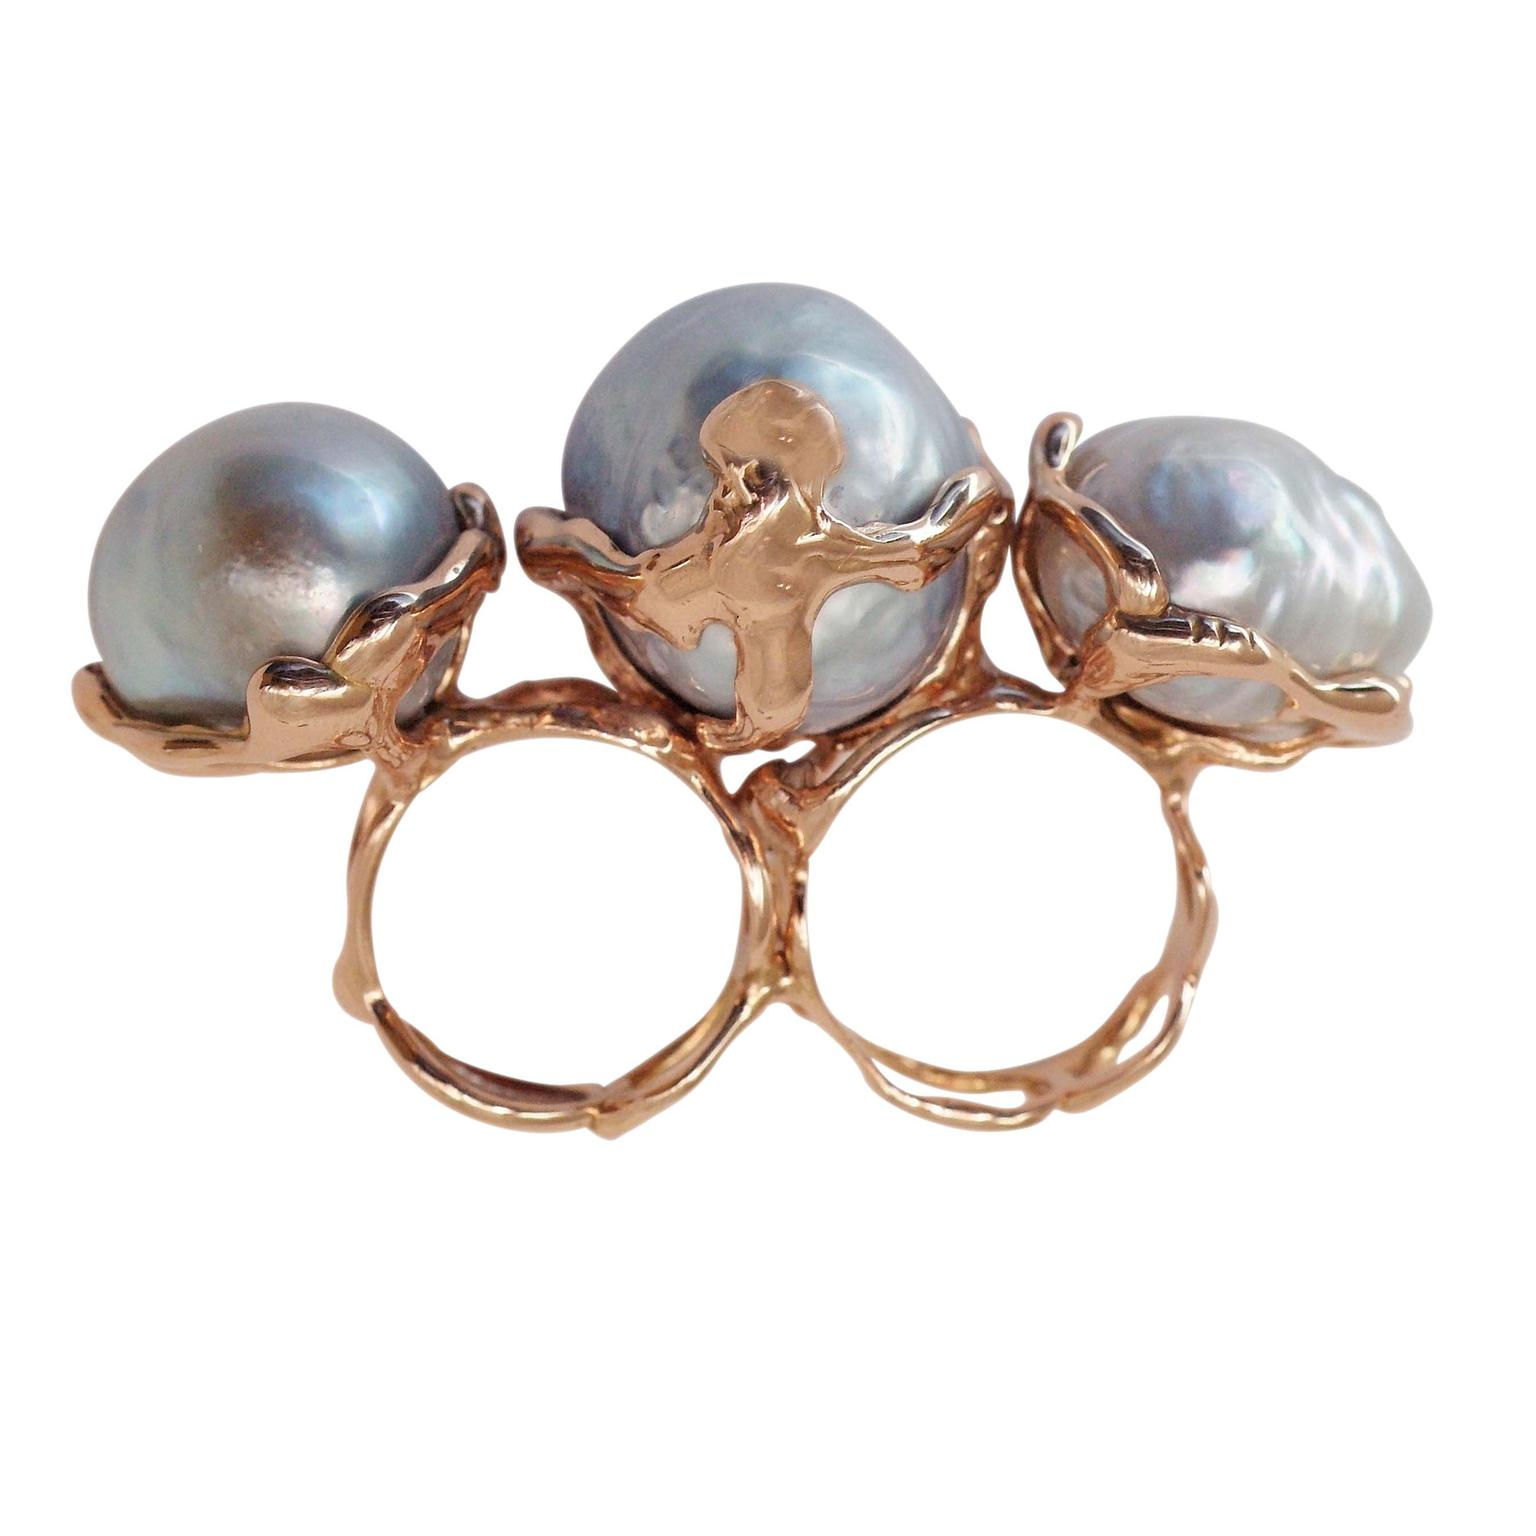 Lucifer Vir Honestus multi-finger pearl ring.